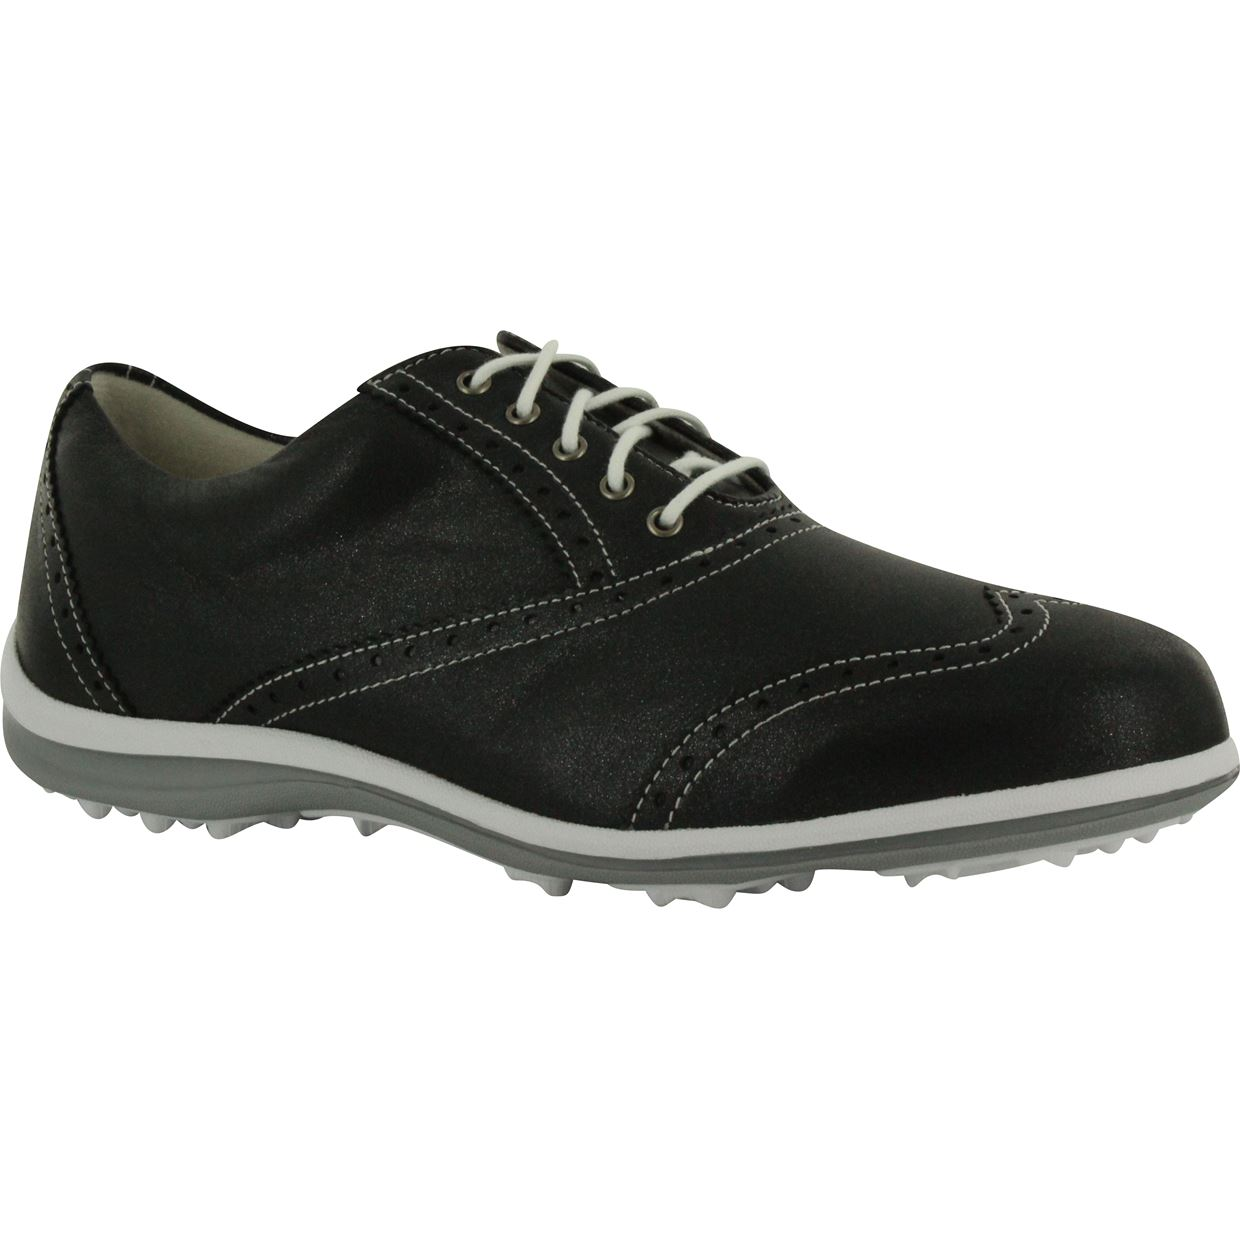 FootJoy Lopro Leather Ladies Golf Shoe from Golf Headquarters